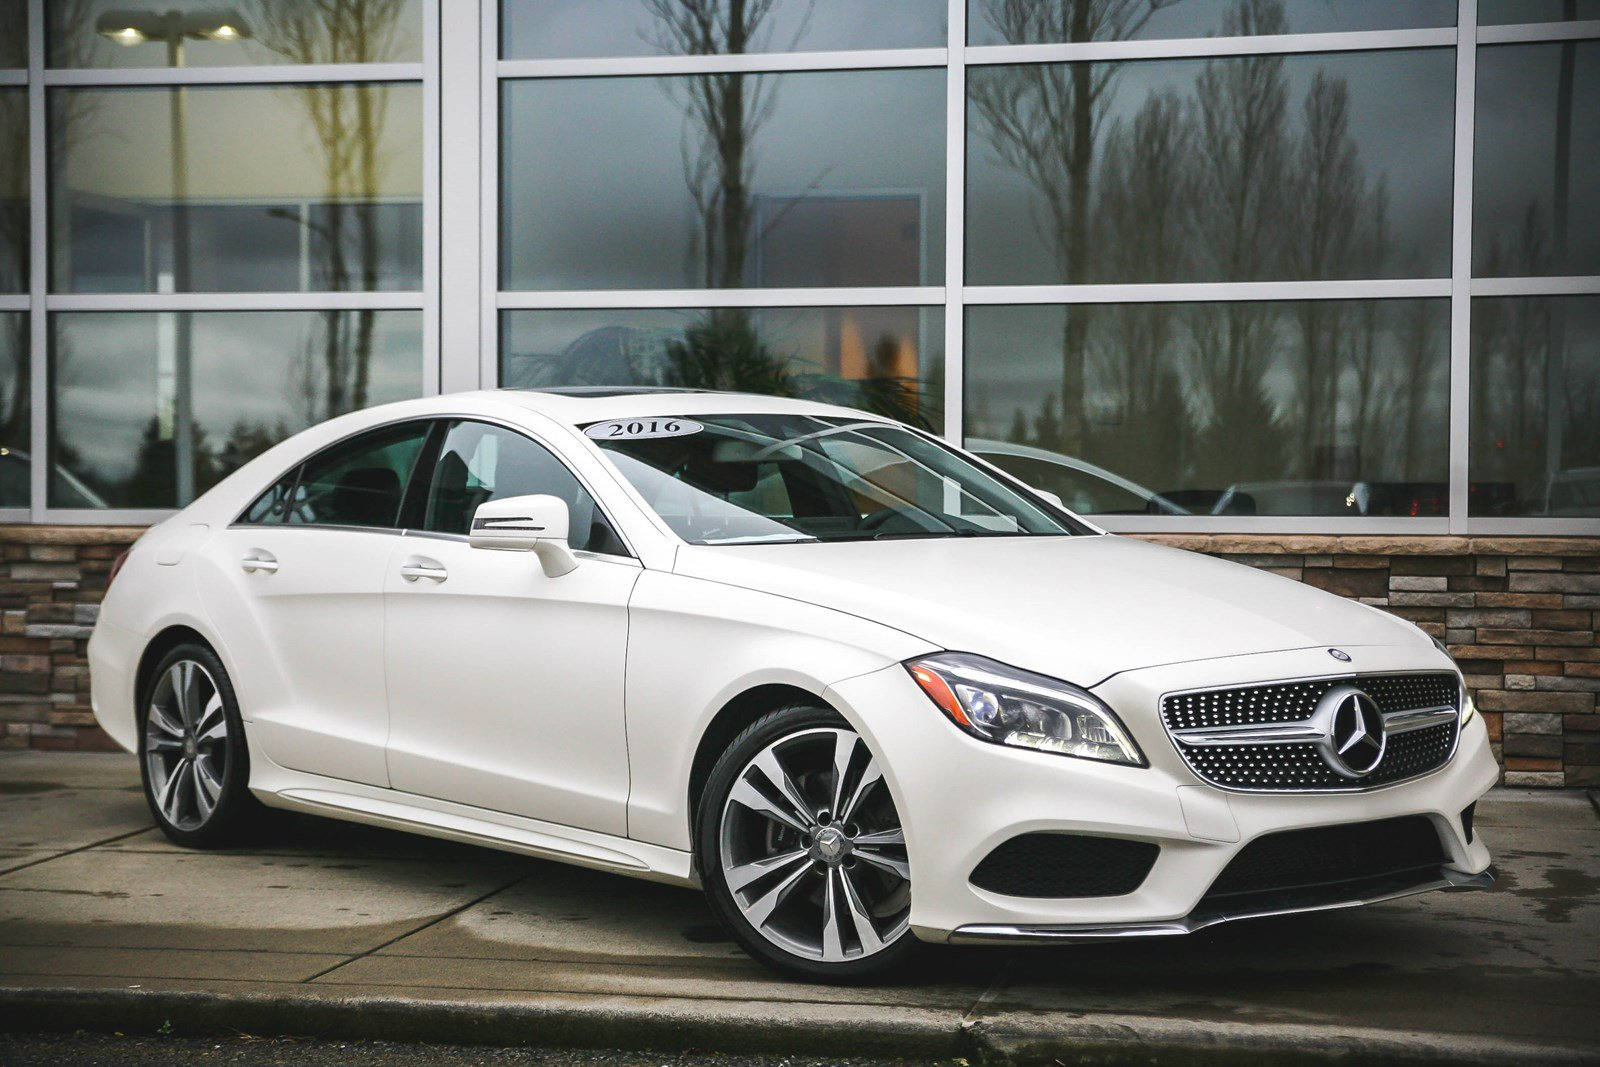 Pre Owned 2016 Mercedes Benz CLS CLS 400 Coupe in Bellevue